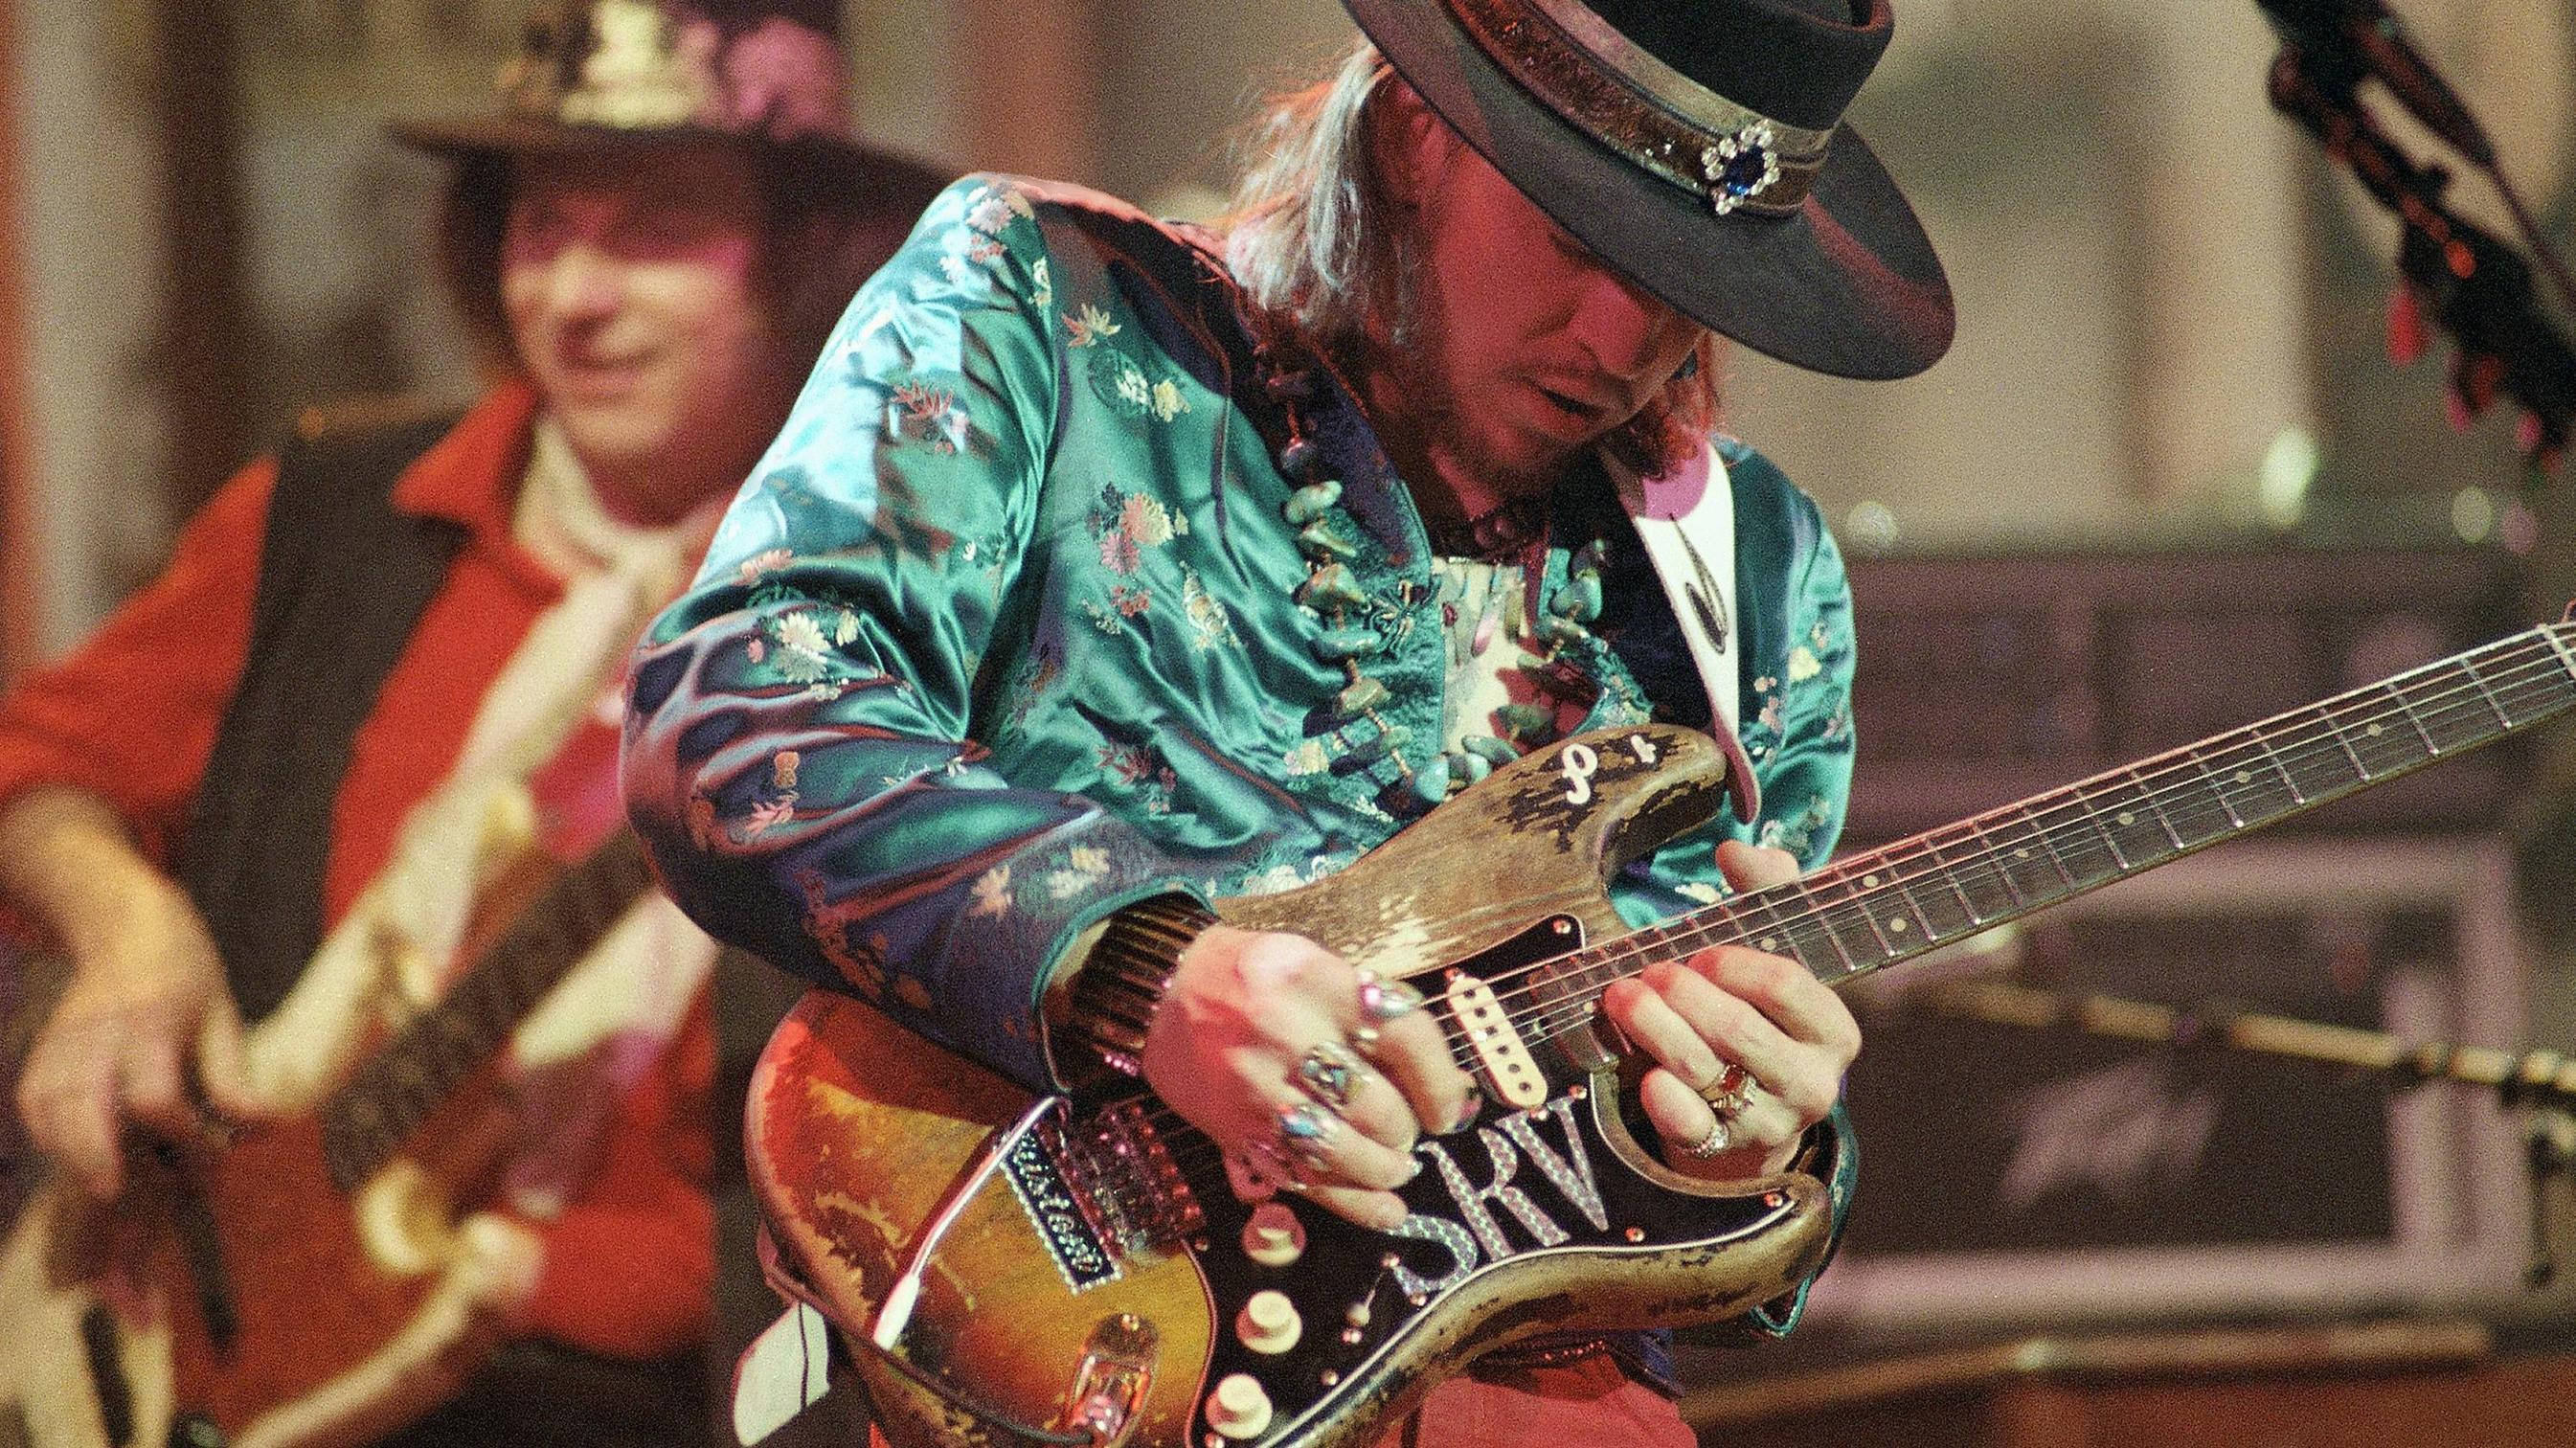 stevie ray vaughan wallpapers wallpaper cave. Black Bedroom Furniture Sets. Home Design Ideas